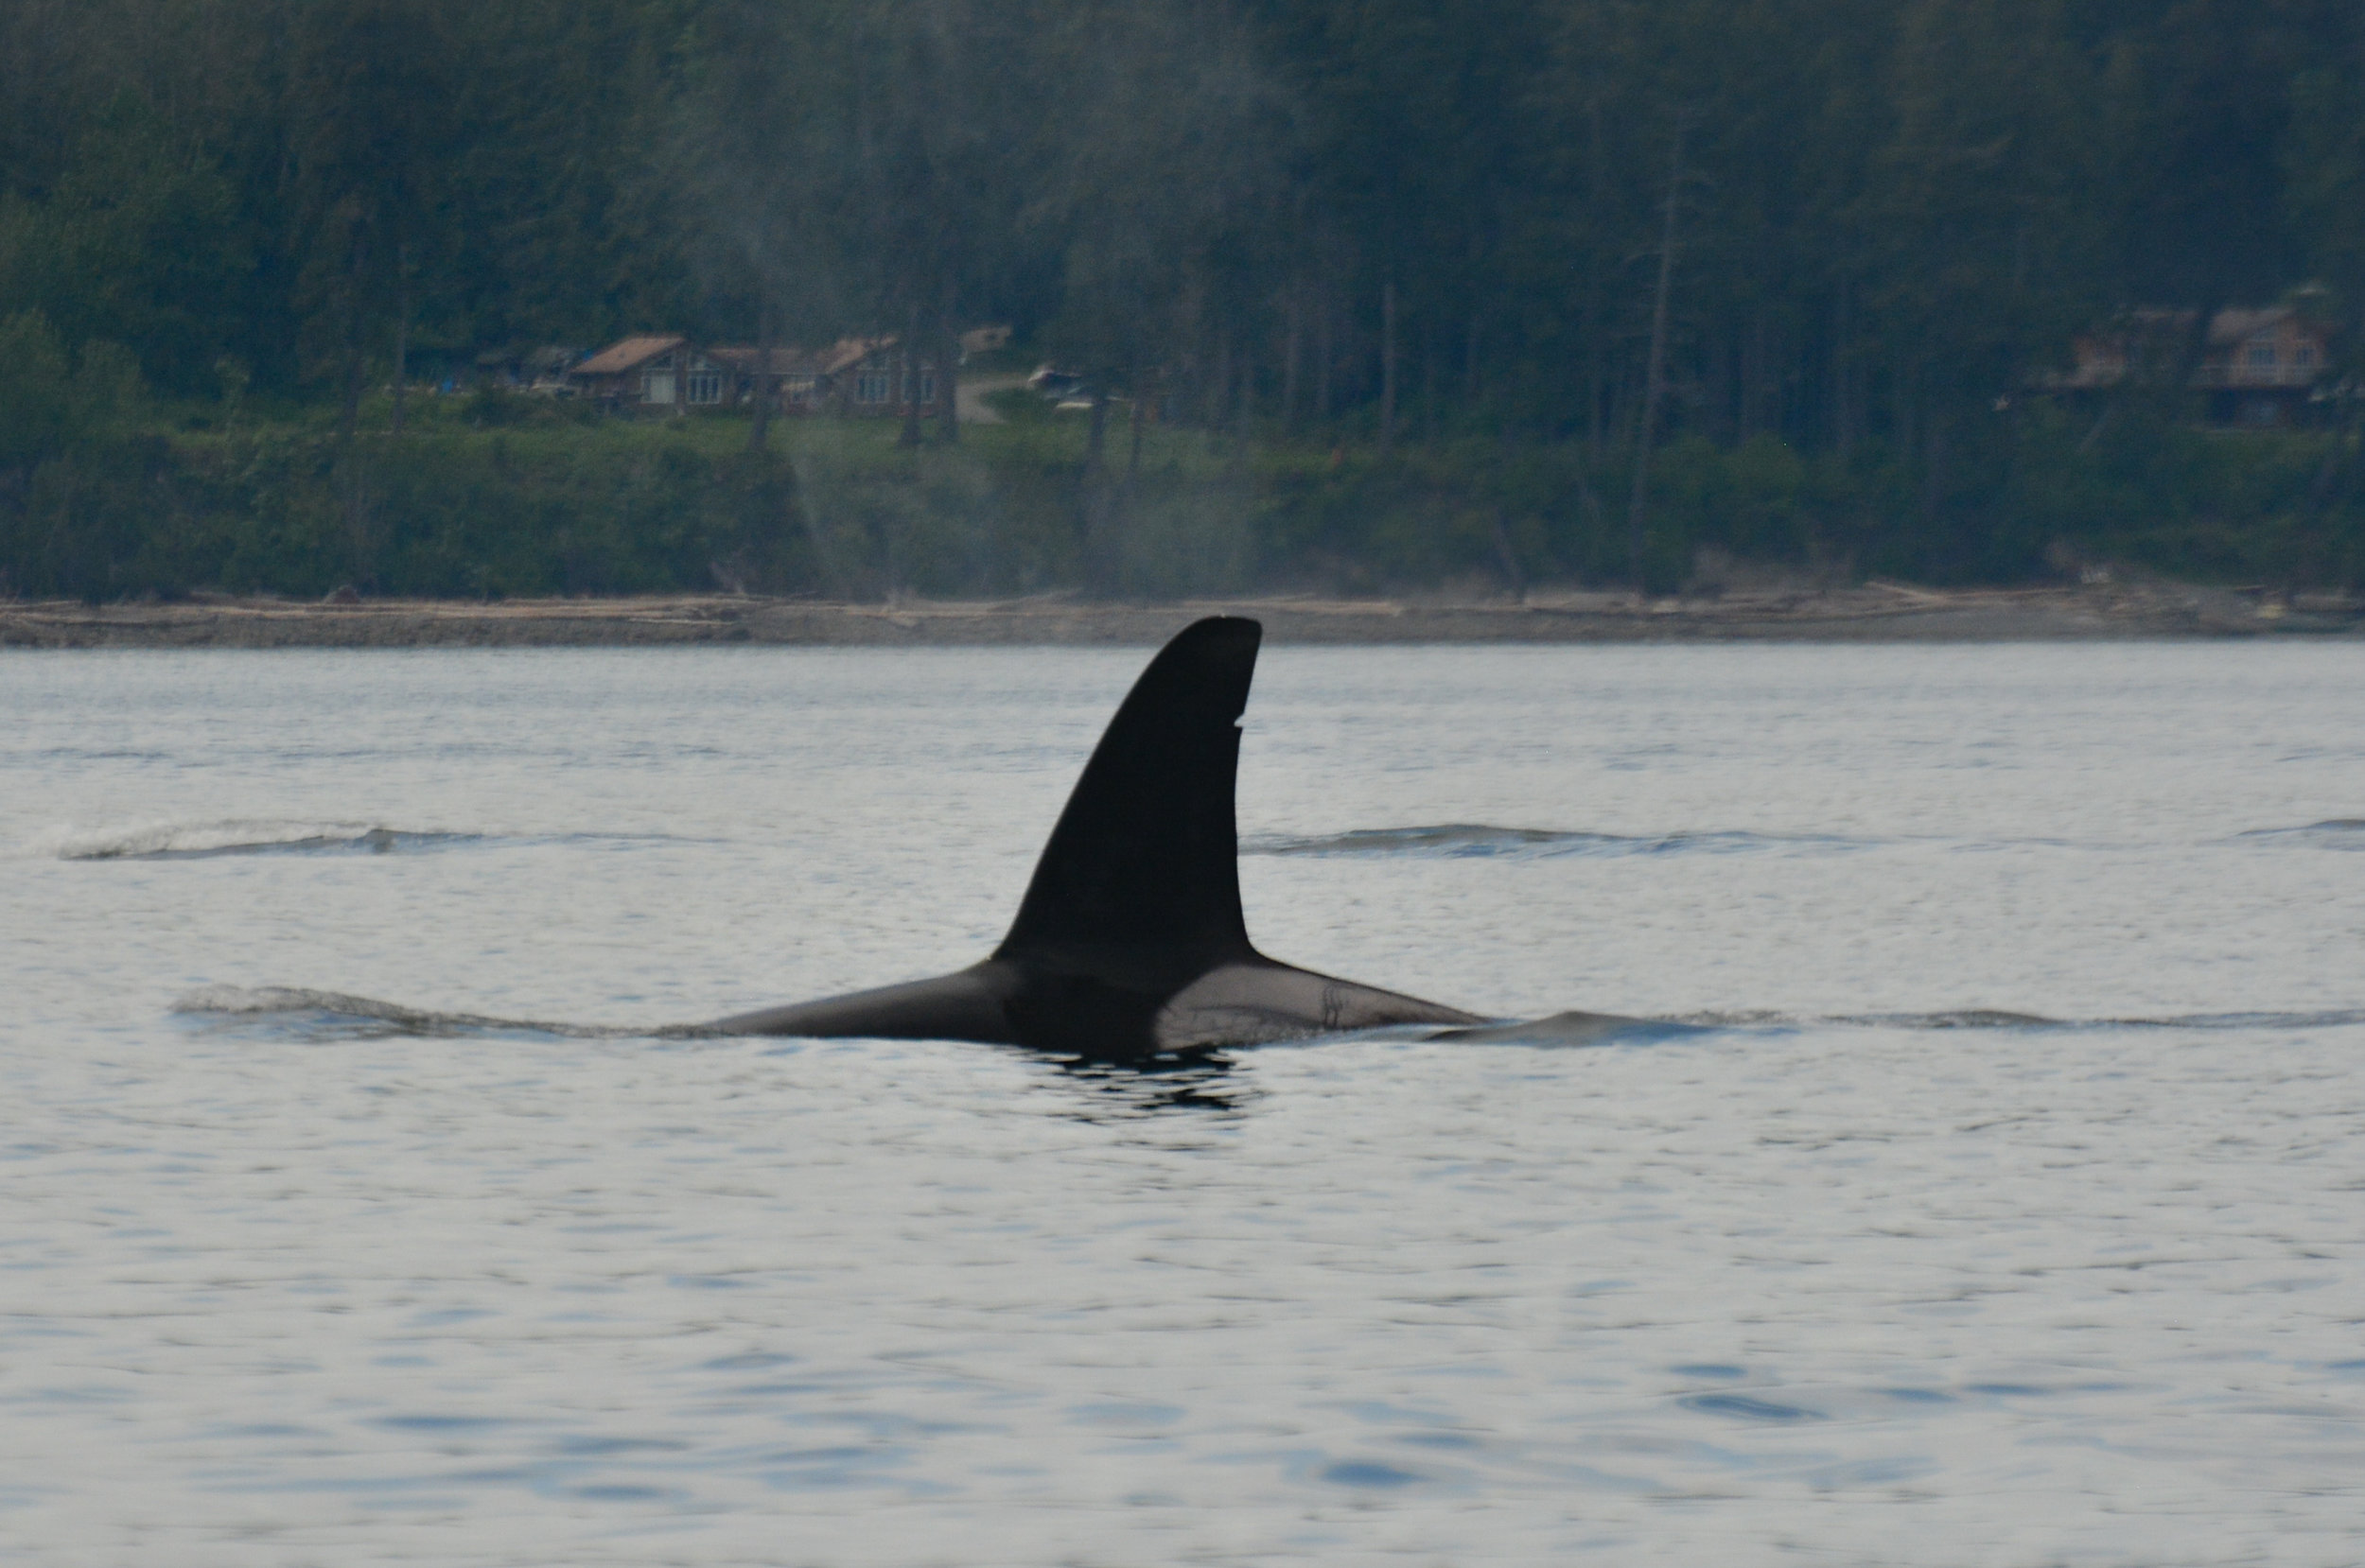 T19B's tall, tilted fin and saddle patch full of scars! Photo by Alanna Vivani